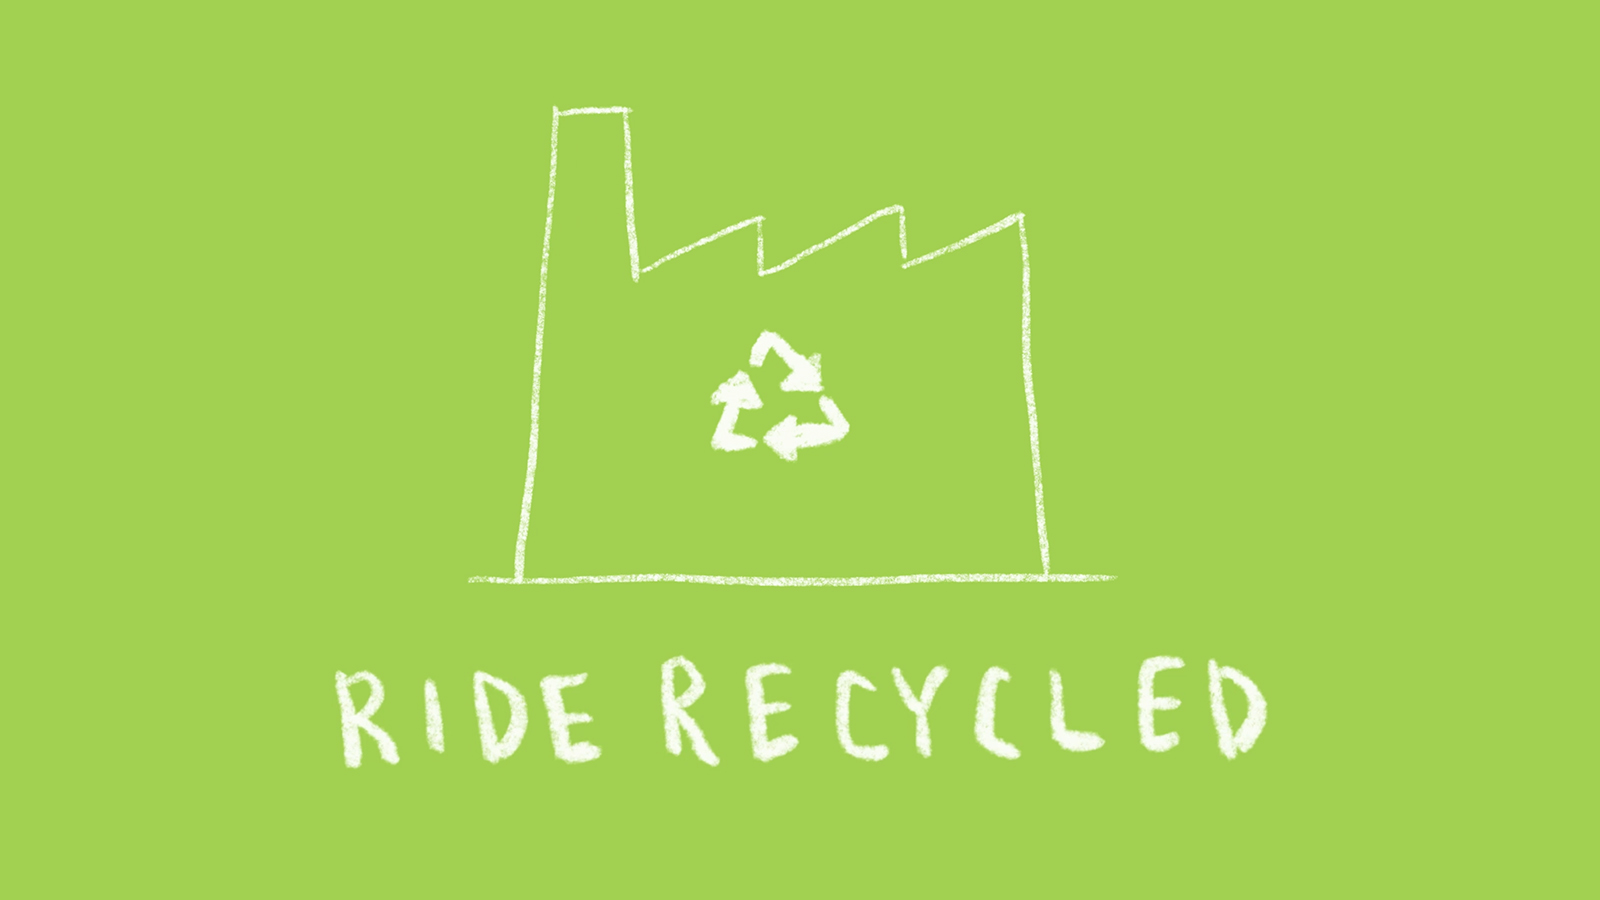 RIDE RECYCLED